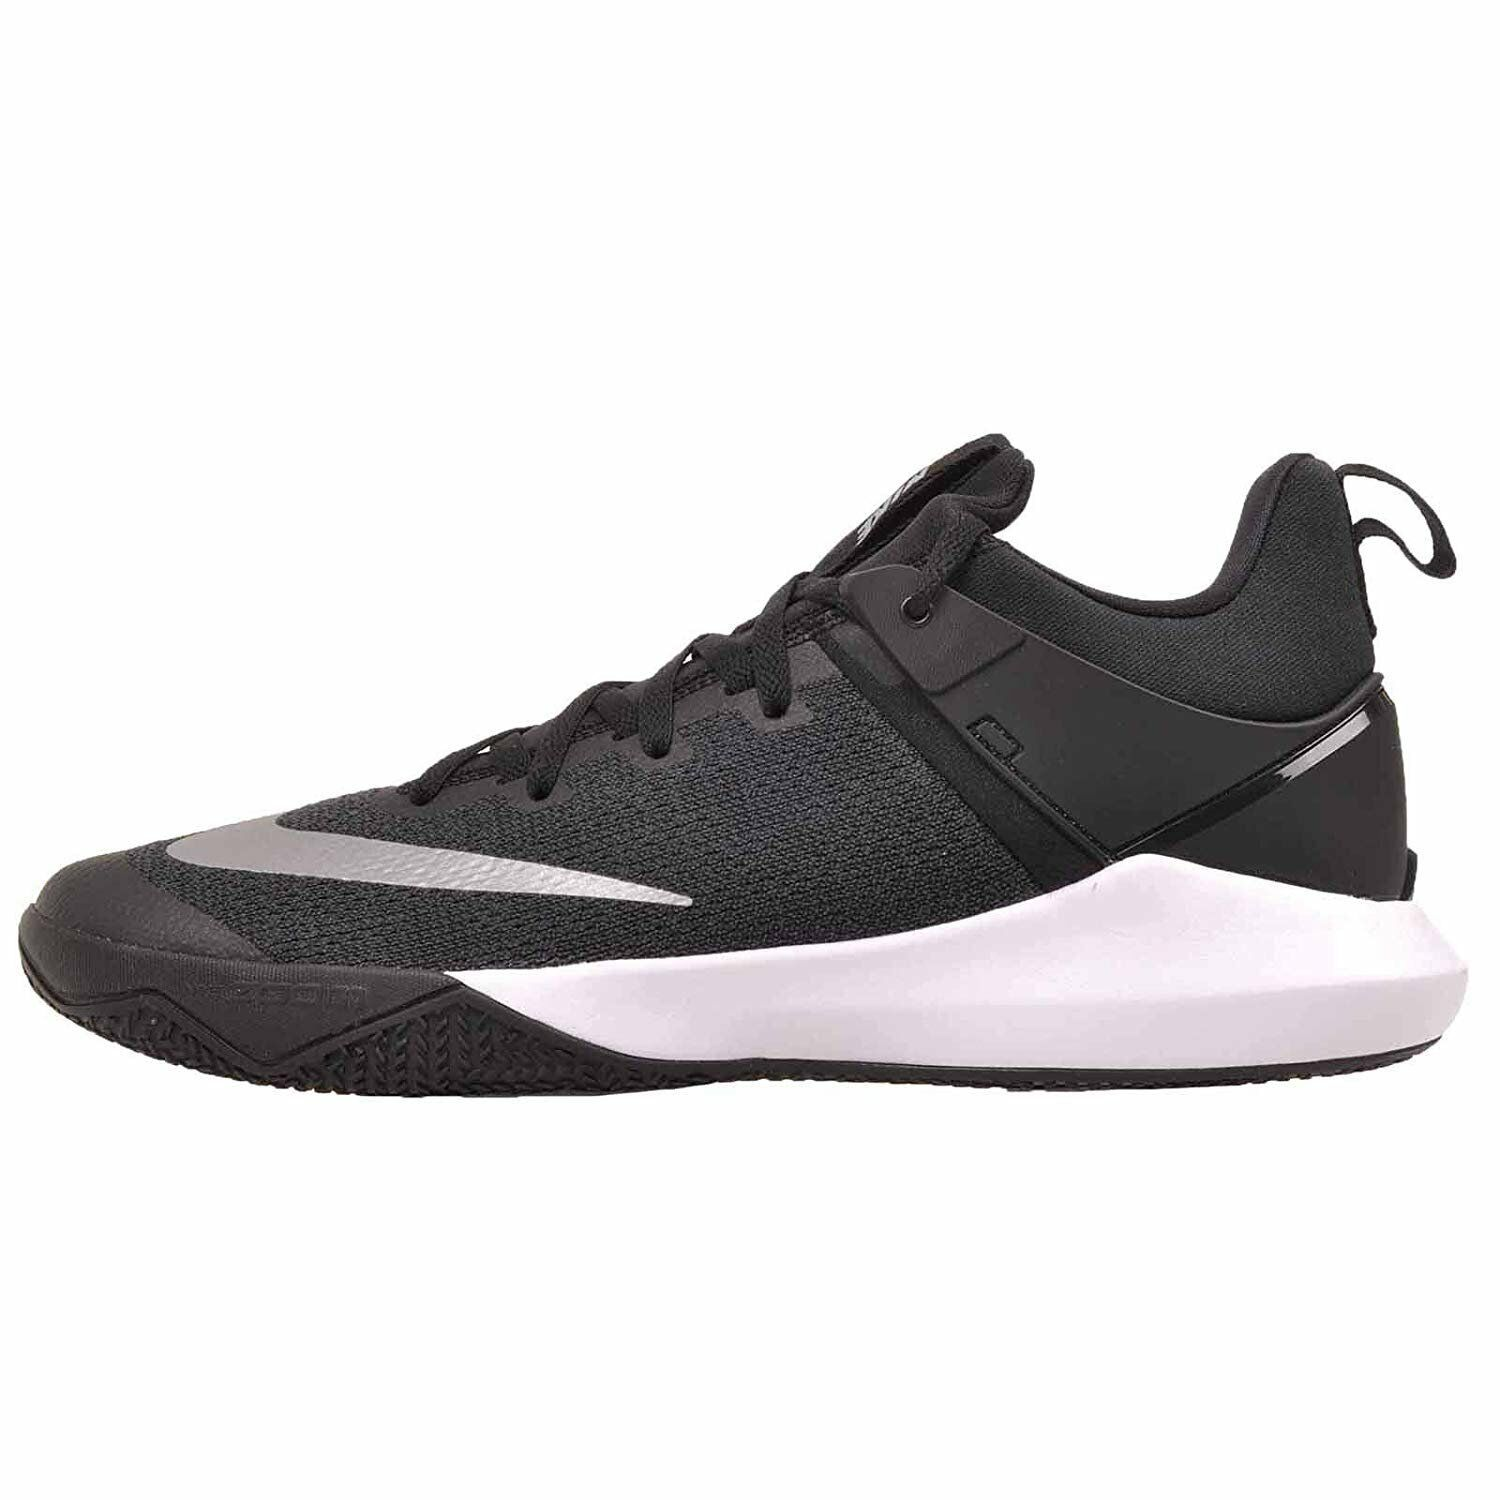 Nike nk897811 001 Zoom Shift TB Men's Basketball shoes Black White